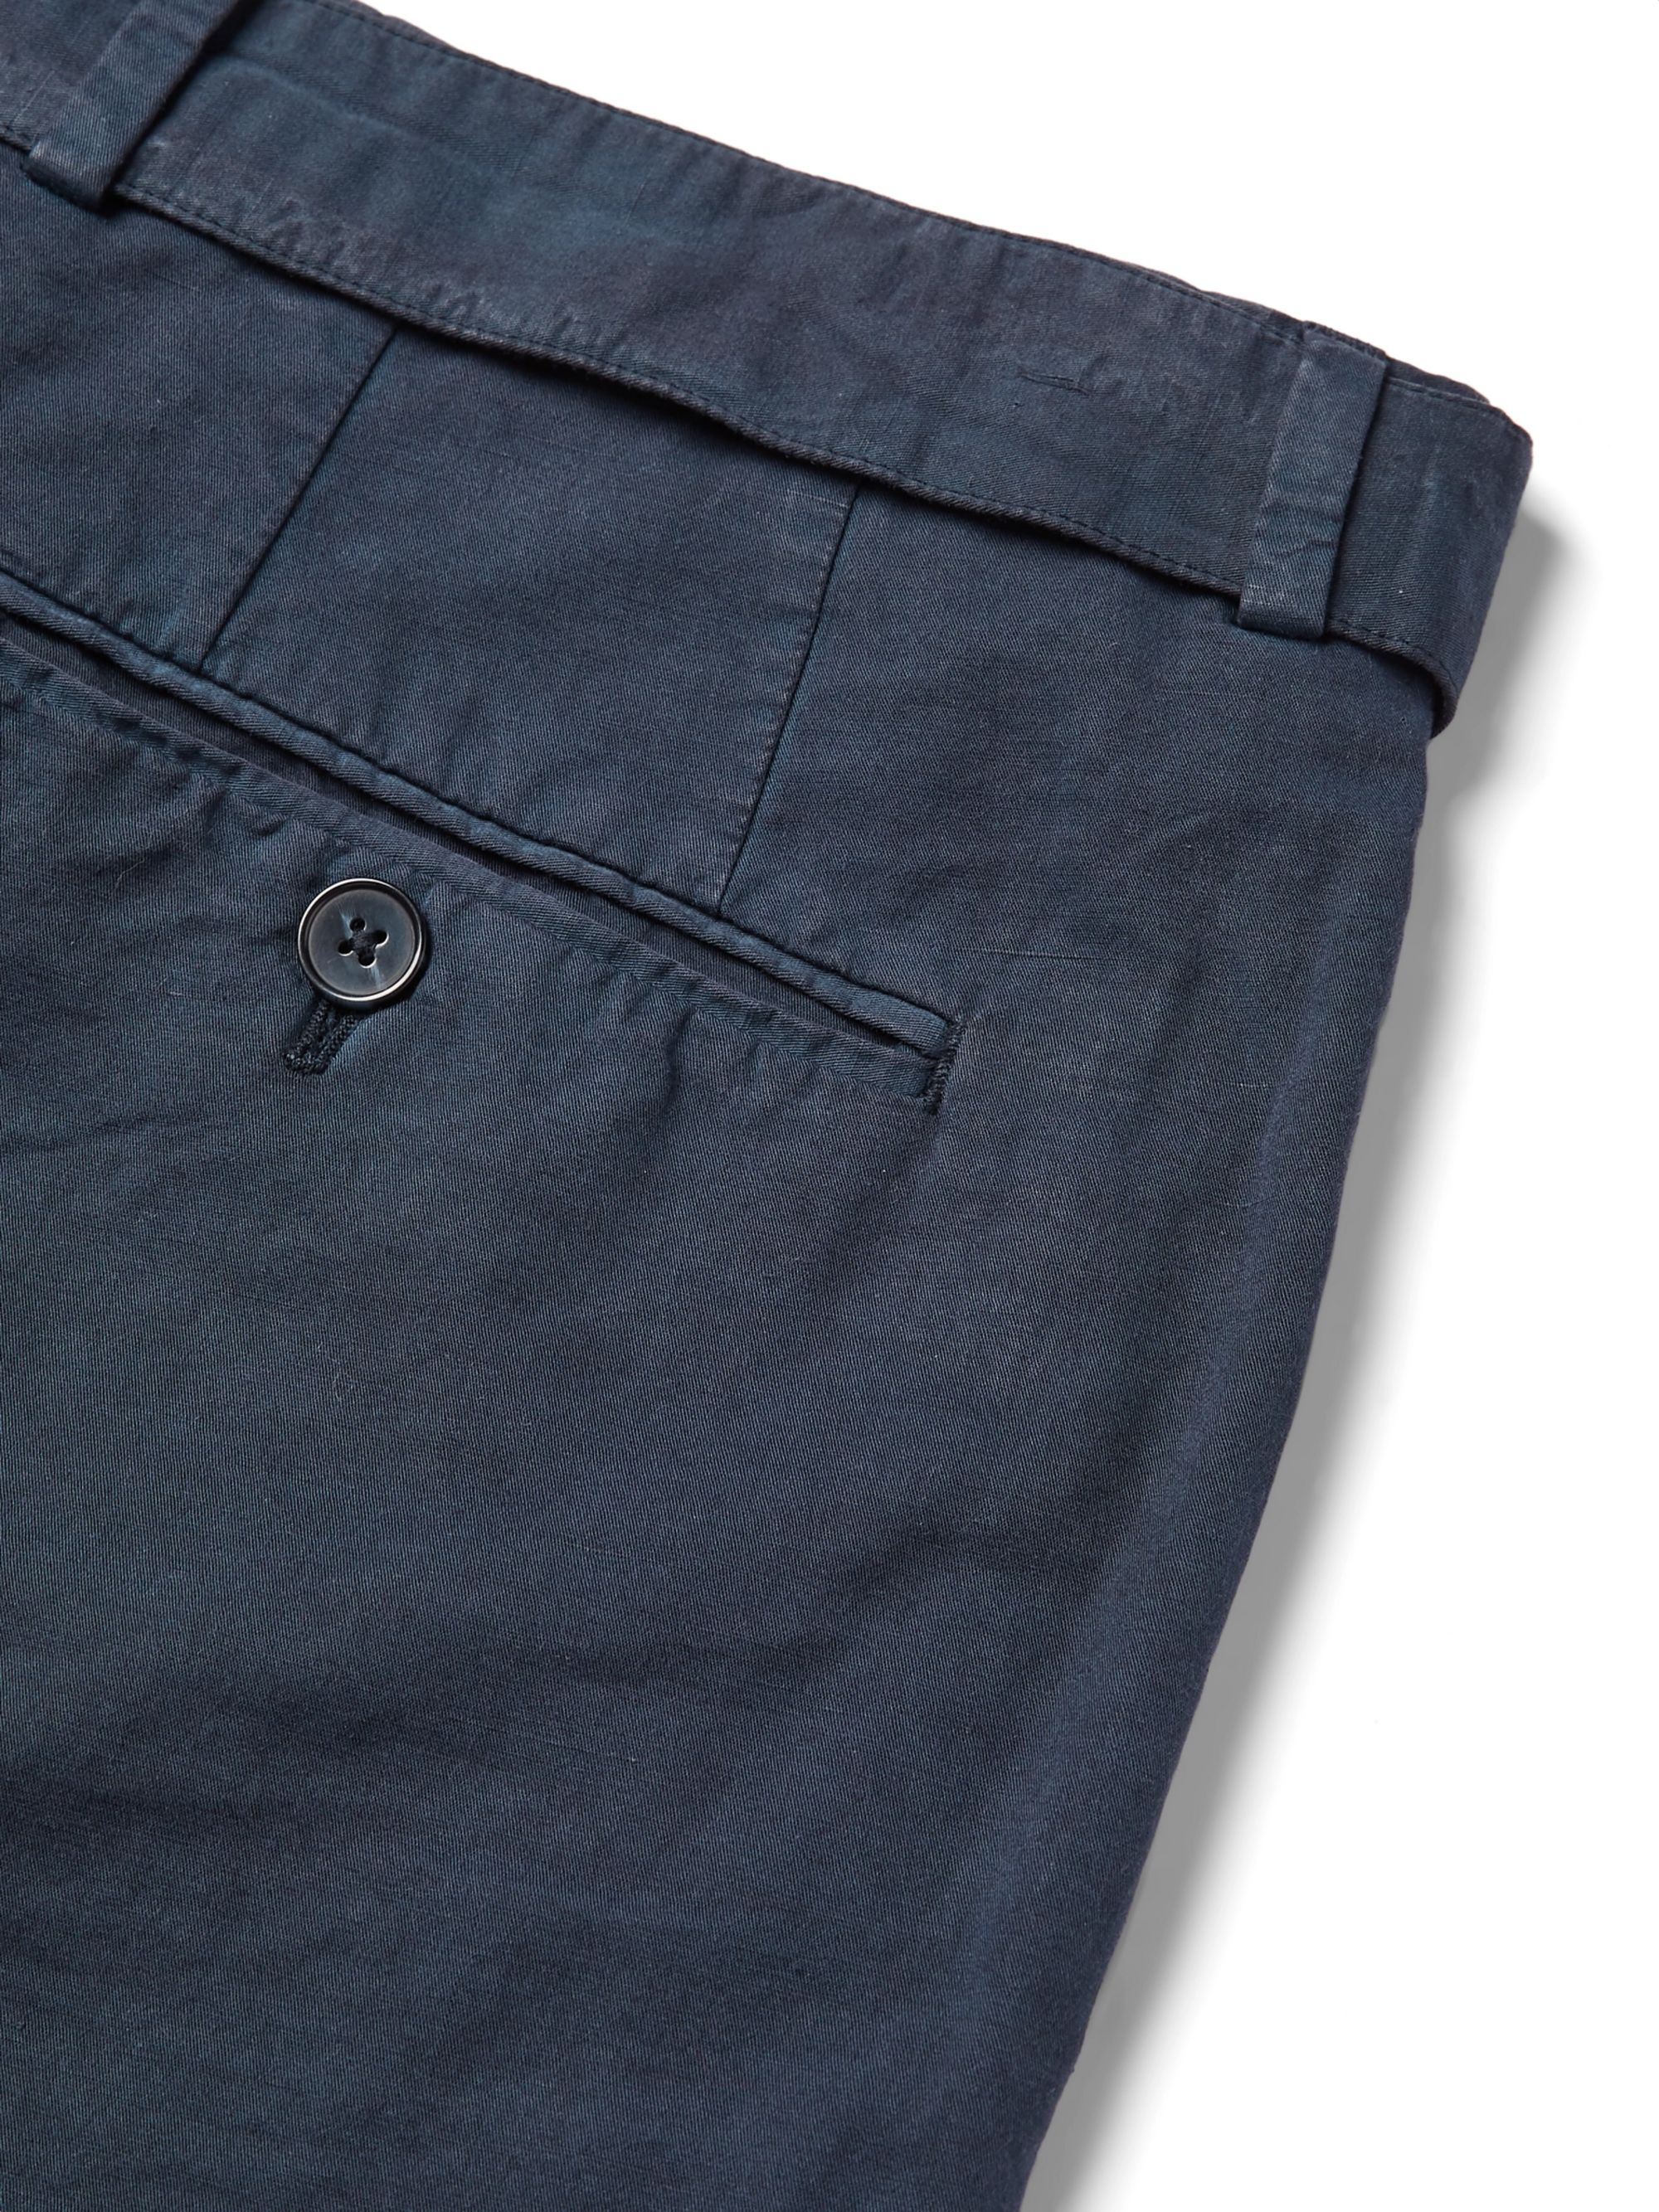 Officine Generale Navy Paul Garment-Dyed Cotton and Linen-Blend Trousers